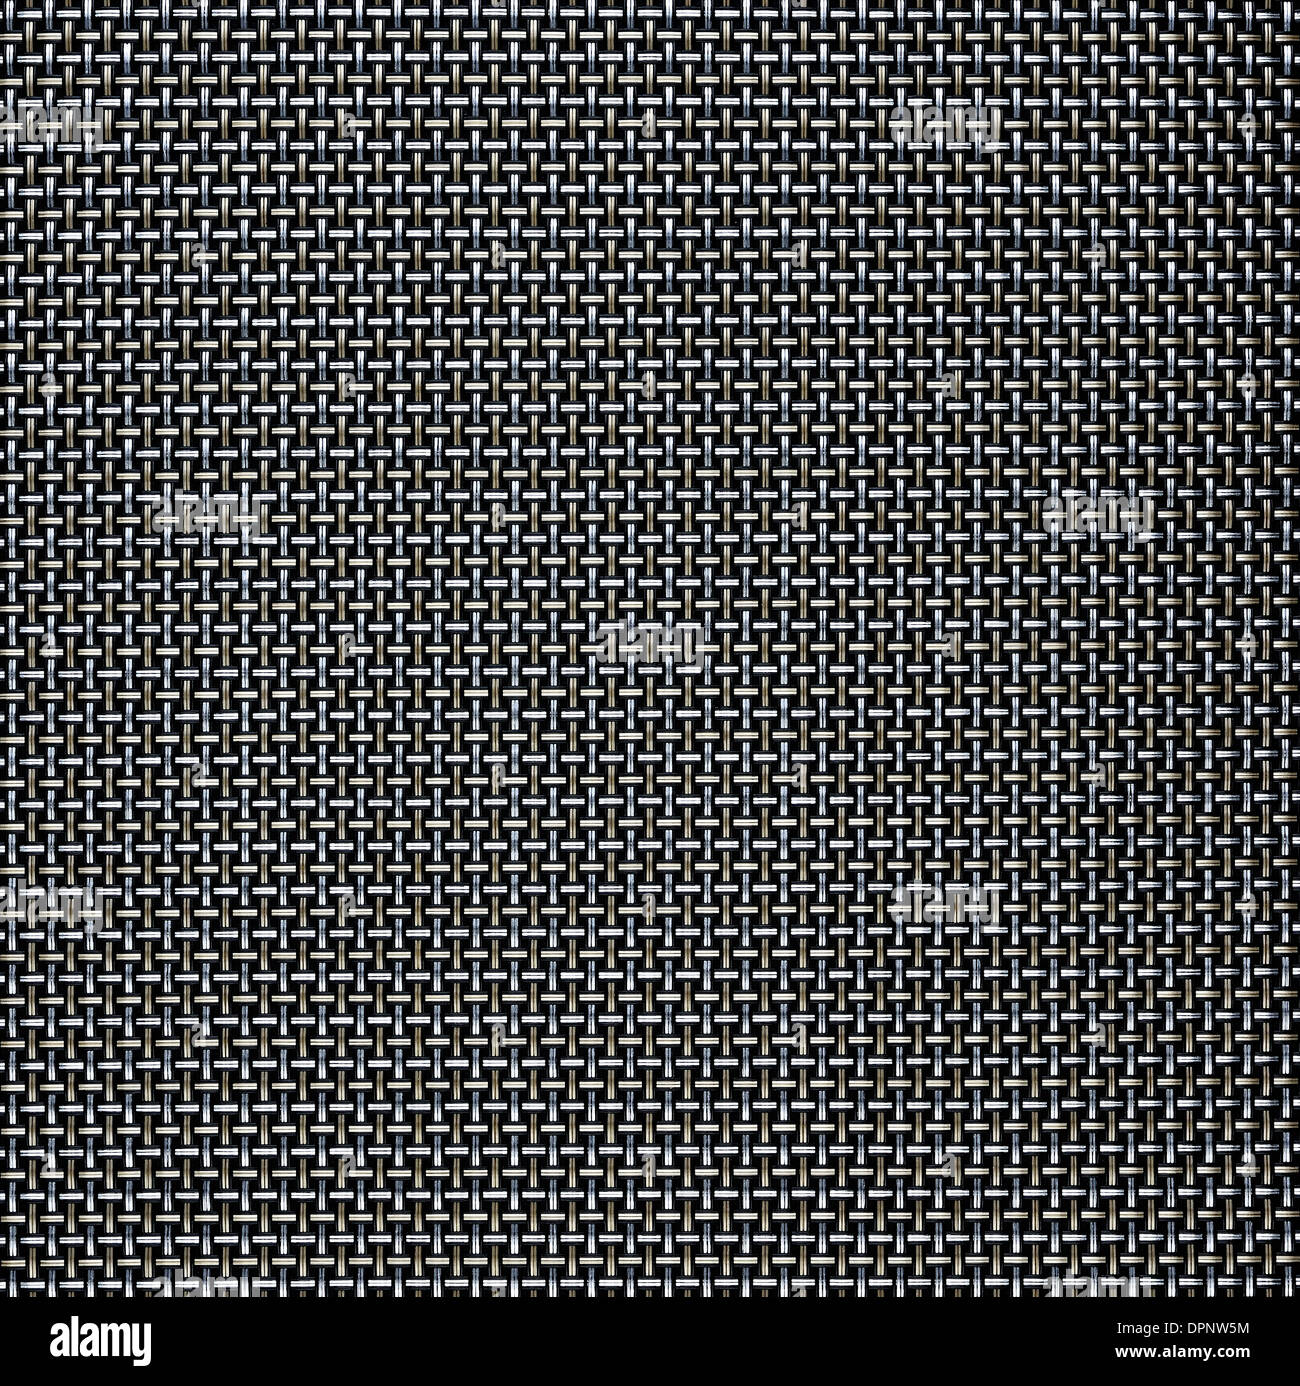 Gold and silver wire grid background - Stock Image